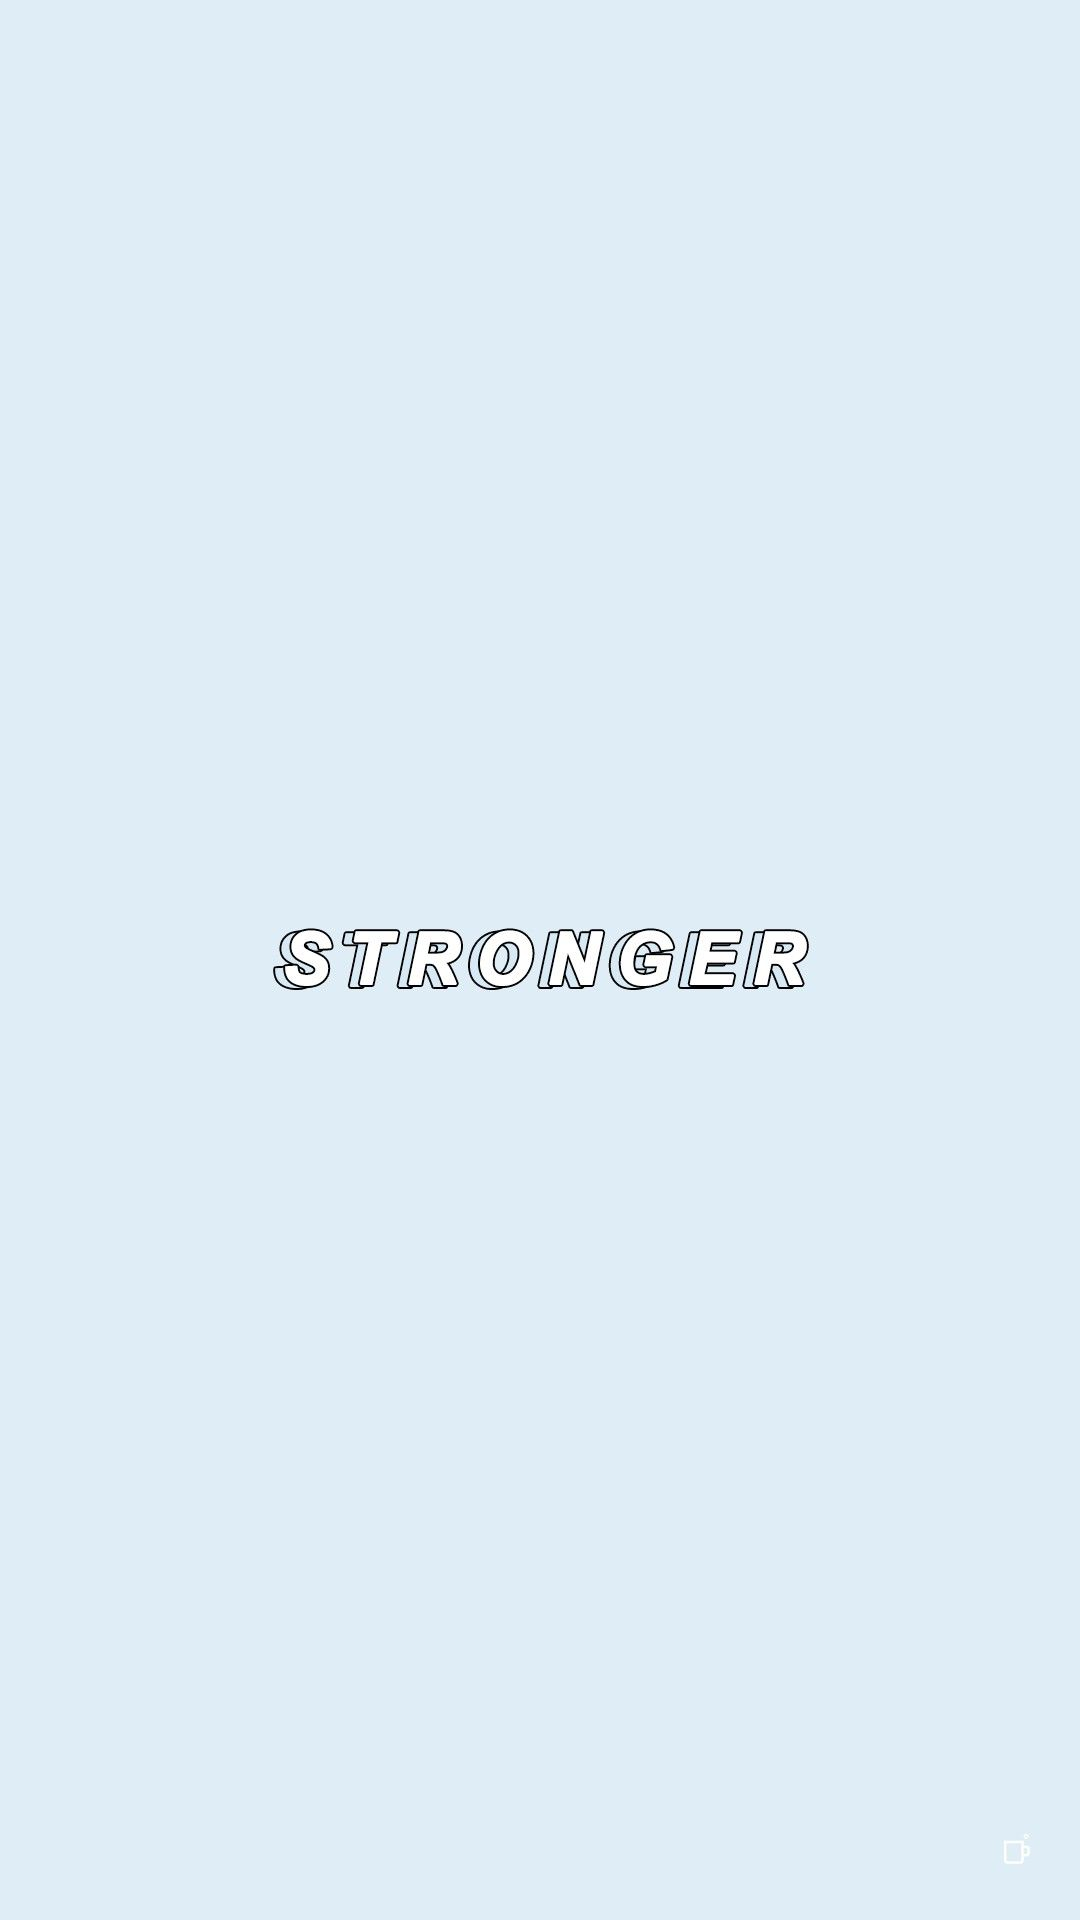 ˏ ˋ 𝐱𝐜𝐥𝐮𝐬𝐢𝐯𝐞𝐣𝐚𝐲 ˊ ˎ Wallpaper Quotes Aesthetic Iphone Wallpaper Words